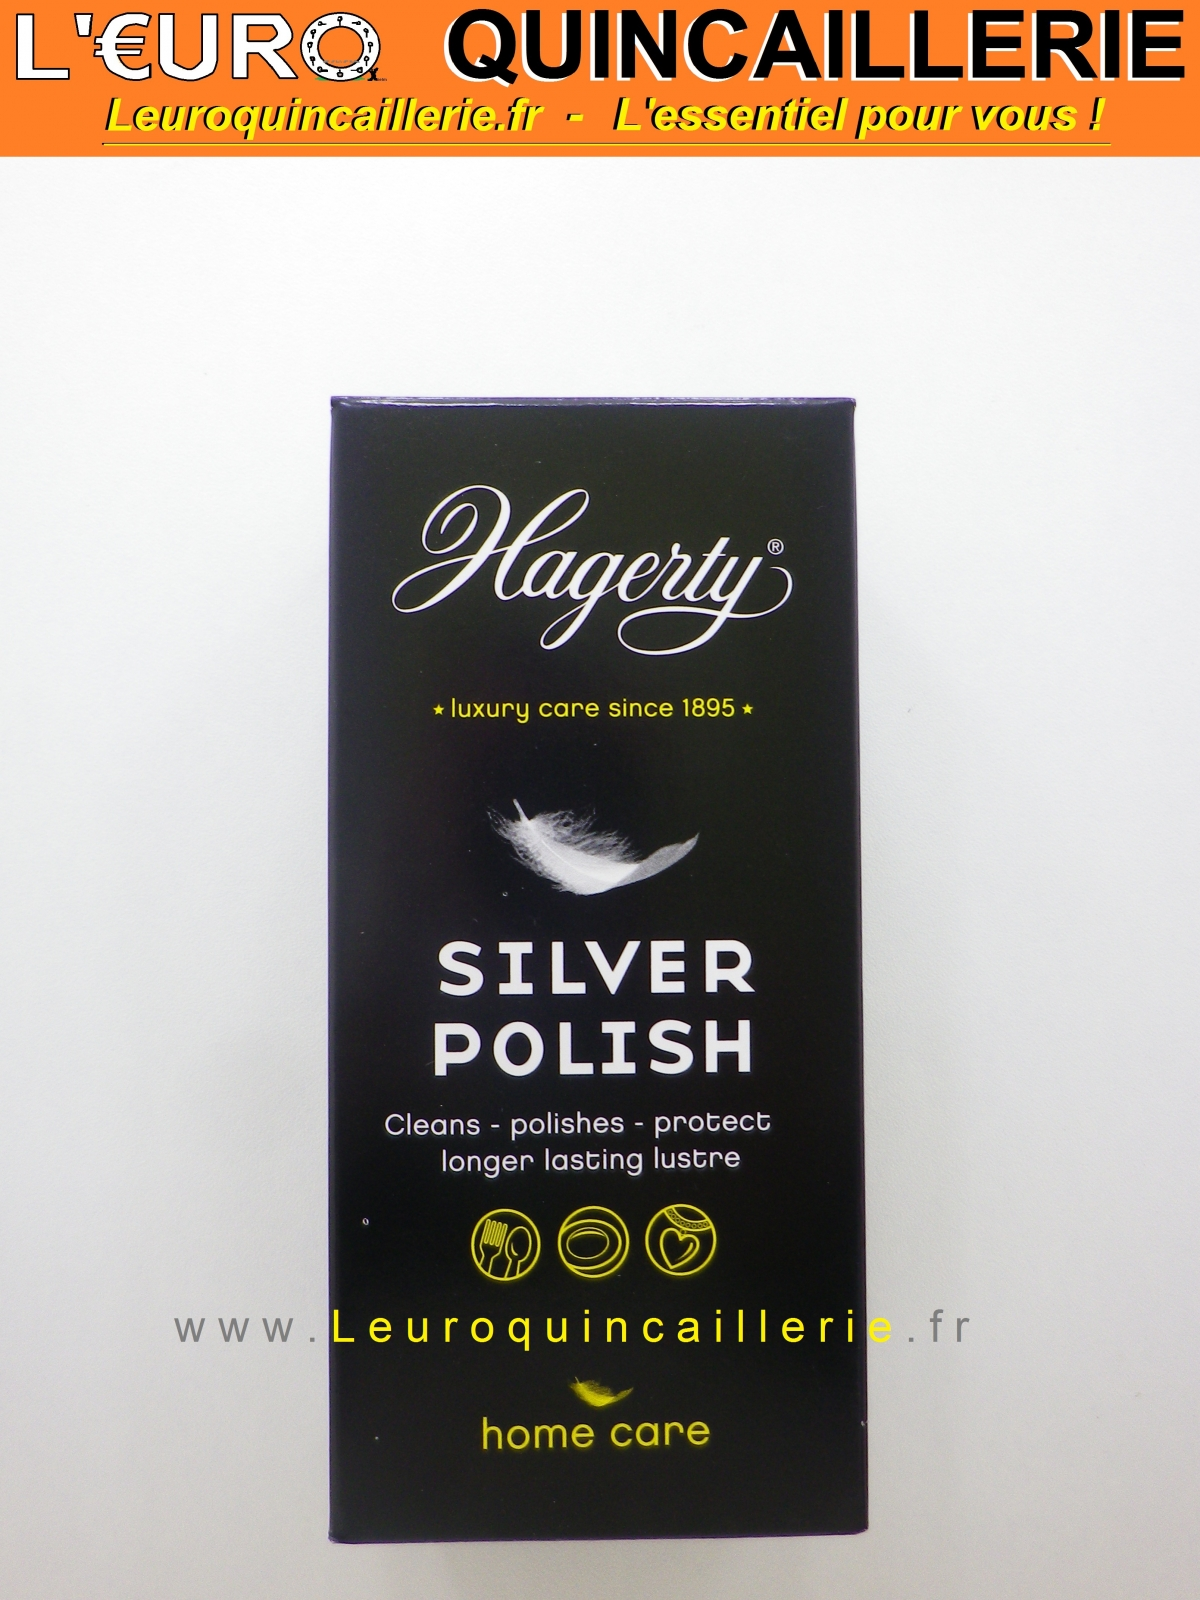 silver polish hagerty lotion nettoyante pour argent 100ml drogueries nettoyant m taux. Black Bedroom Furniture Sets. Home Design Ideas